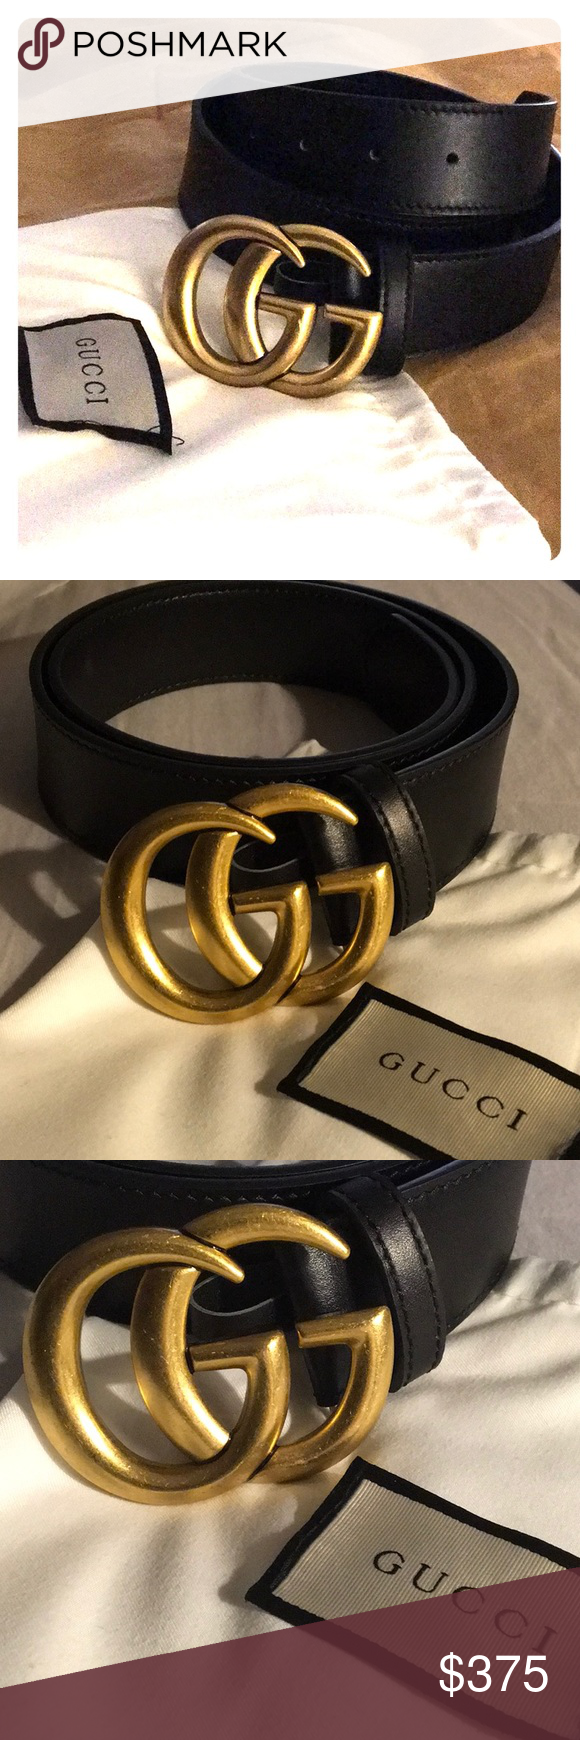 54f569cb7 Brand new GUCCI leather belt 11/2 inch black leather GUCCI Belt, bran new!  Size 85/34 meaning small Beautiful gold doble G bucle. It has its bag.